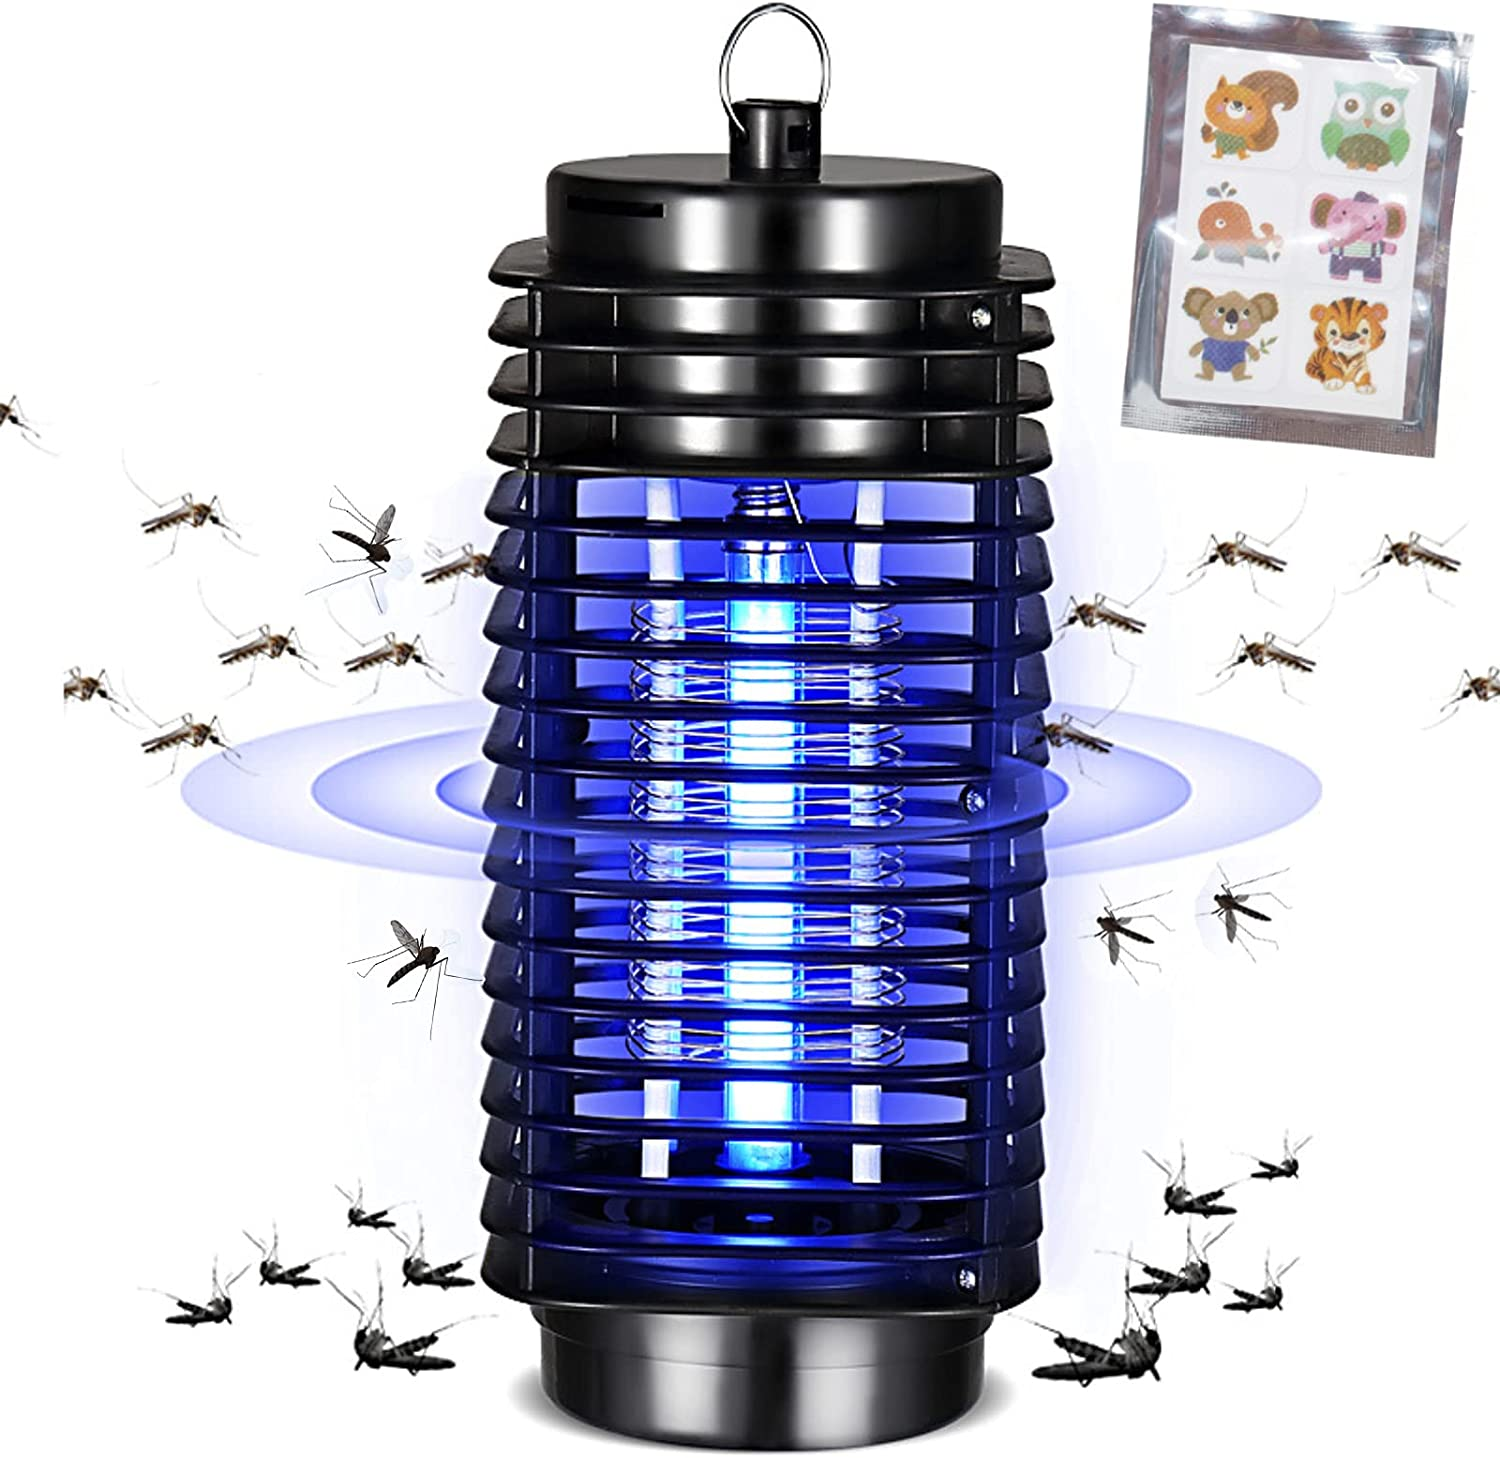 Bug Zapper,Electronic Mosquito Zappers for Indoor & Outdoor,Mosquito Trap,Mosquito Killer,Fly Zapper,Gnat Killer for Indoor,Indoor Bug Zapper for Home,Bedroom, Kitchen,Office,Backyard,Patio